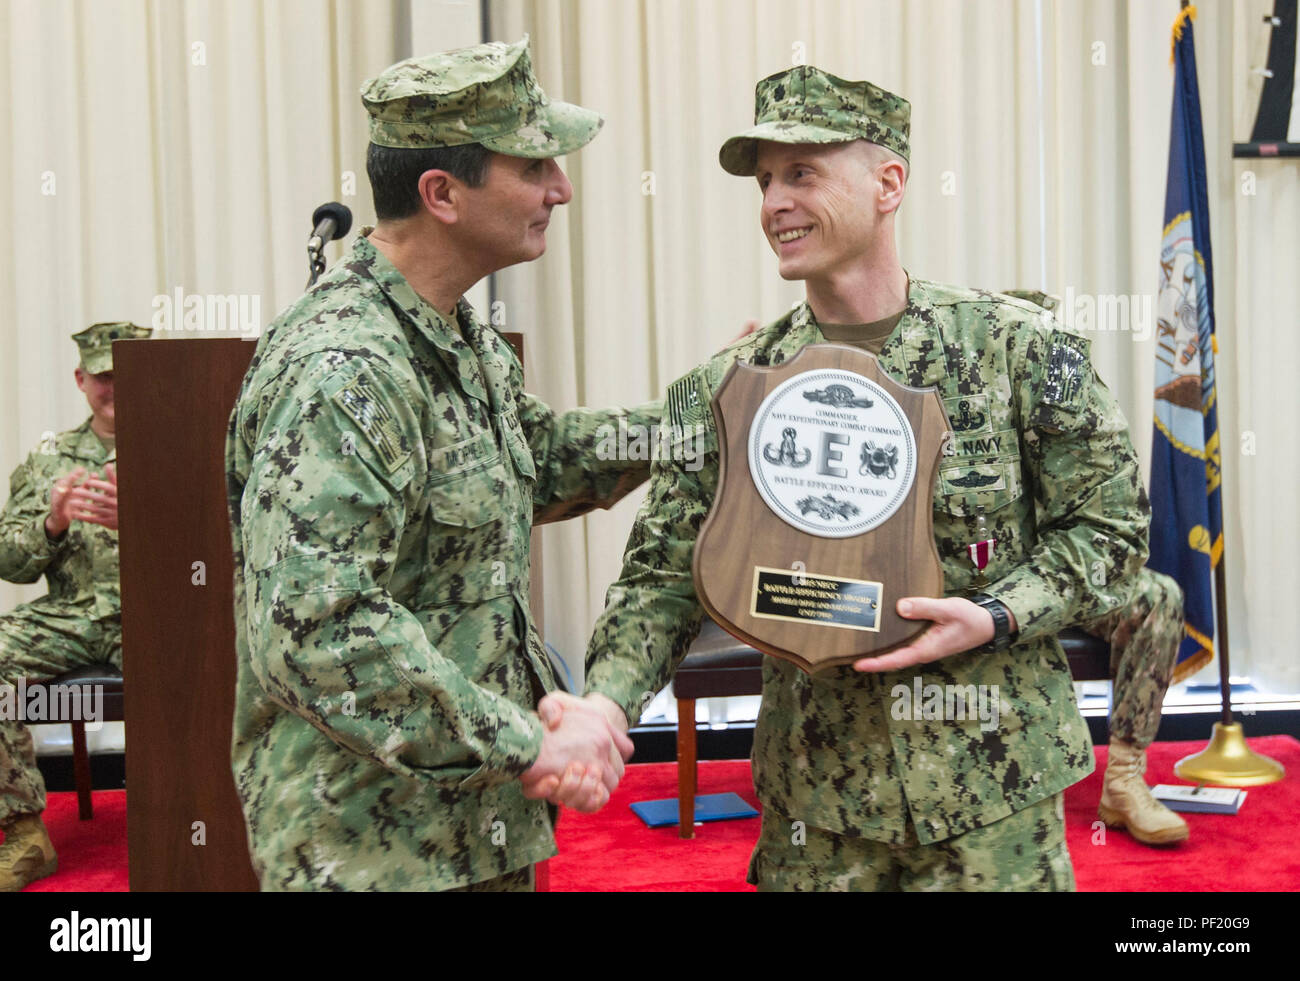 160219-N-SF508-134   VIRGINIA BEACH, Va. (Feb. 19, 2016) Rear Adm. Frank Morneau, Commander, Navy Expeditionary Combat Command, presents Cmdr. Jeffrey Morganthaler, commanding officer of Mobile Diving and Salvage Unit Two (MDSU 2) with the Battle Efficiency award during a change of command ceremony at Joint Expeditionary Base Little Creek. Cmdr. Morganthaler was relieved by Cmdr. William Wirtz as commanding officer of MDSU 2, the only east coast mobile diving and salvage unit. (U.S. Navy photo by Mass Communication Specialist 2nd Class Charles Oki/Released) - Stock Image